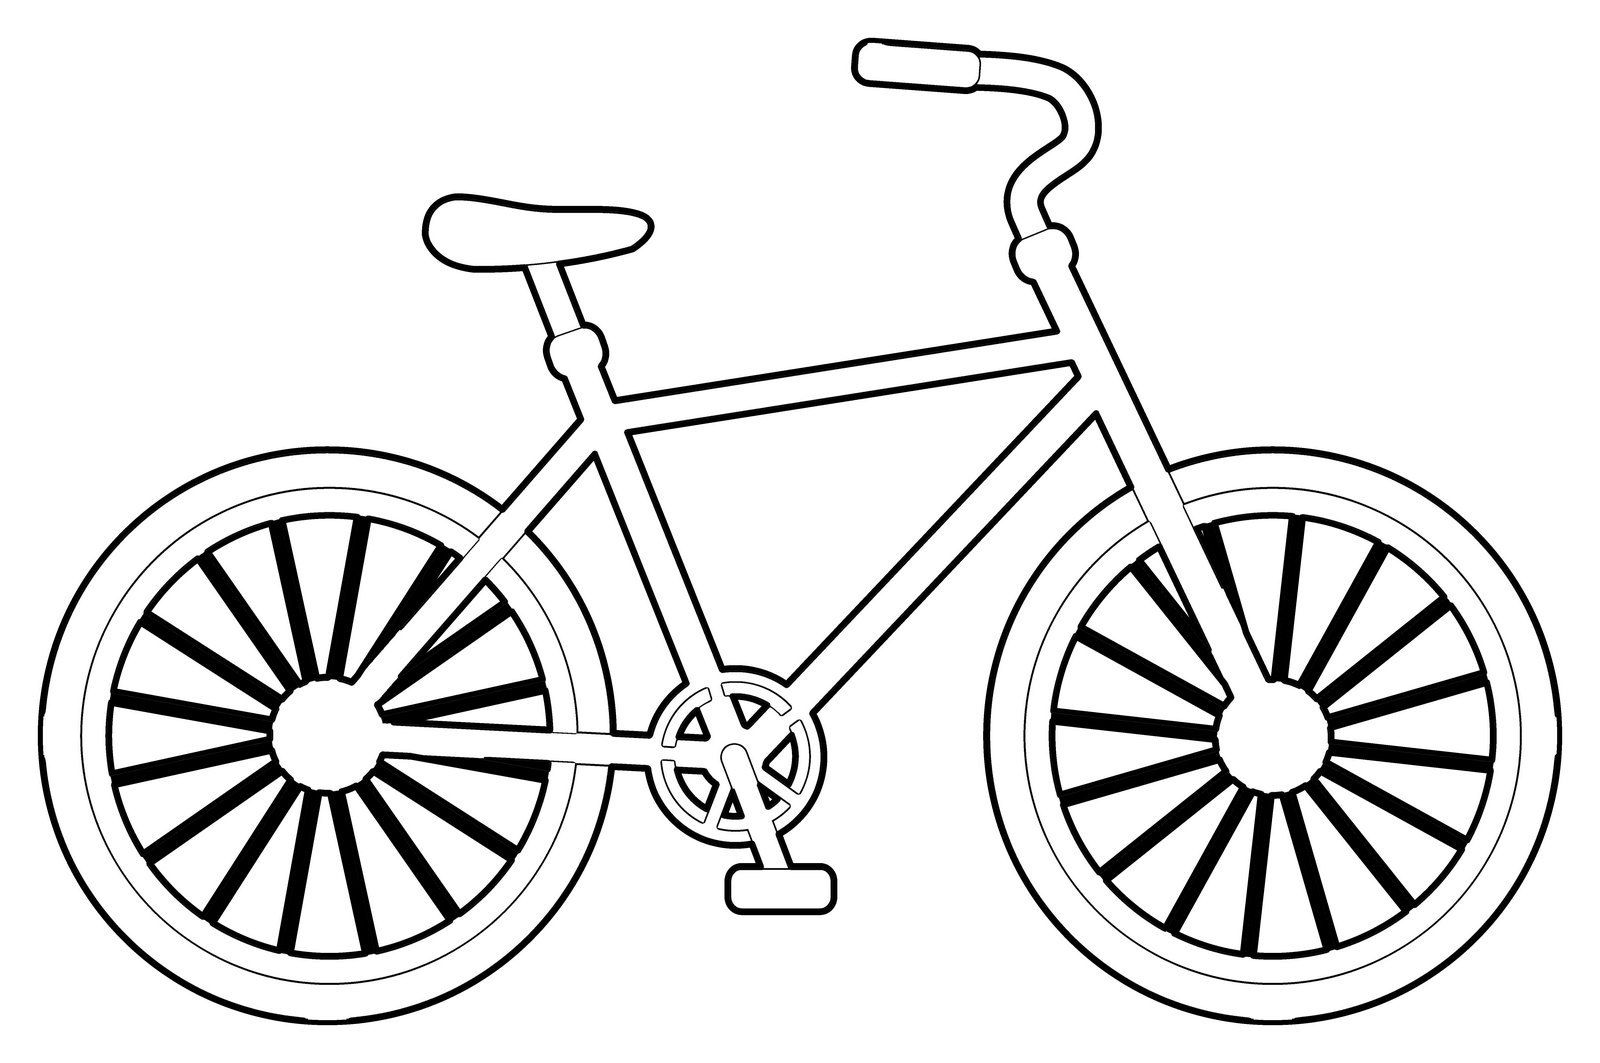 Bicyle Riding Coloring Page For Kids Cool Coloring Pages Coloring Pages Pumpkin Coloring Pages